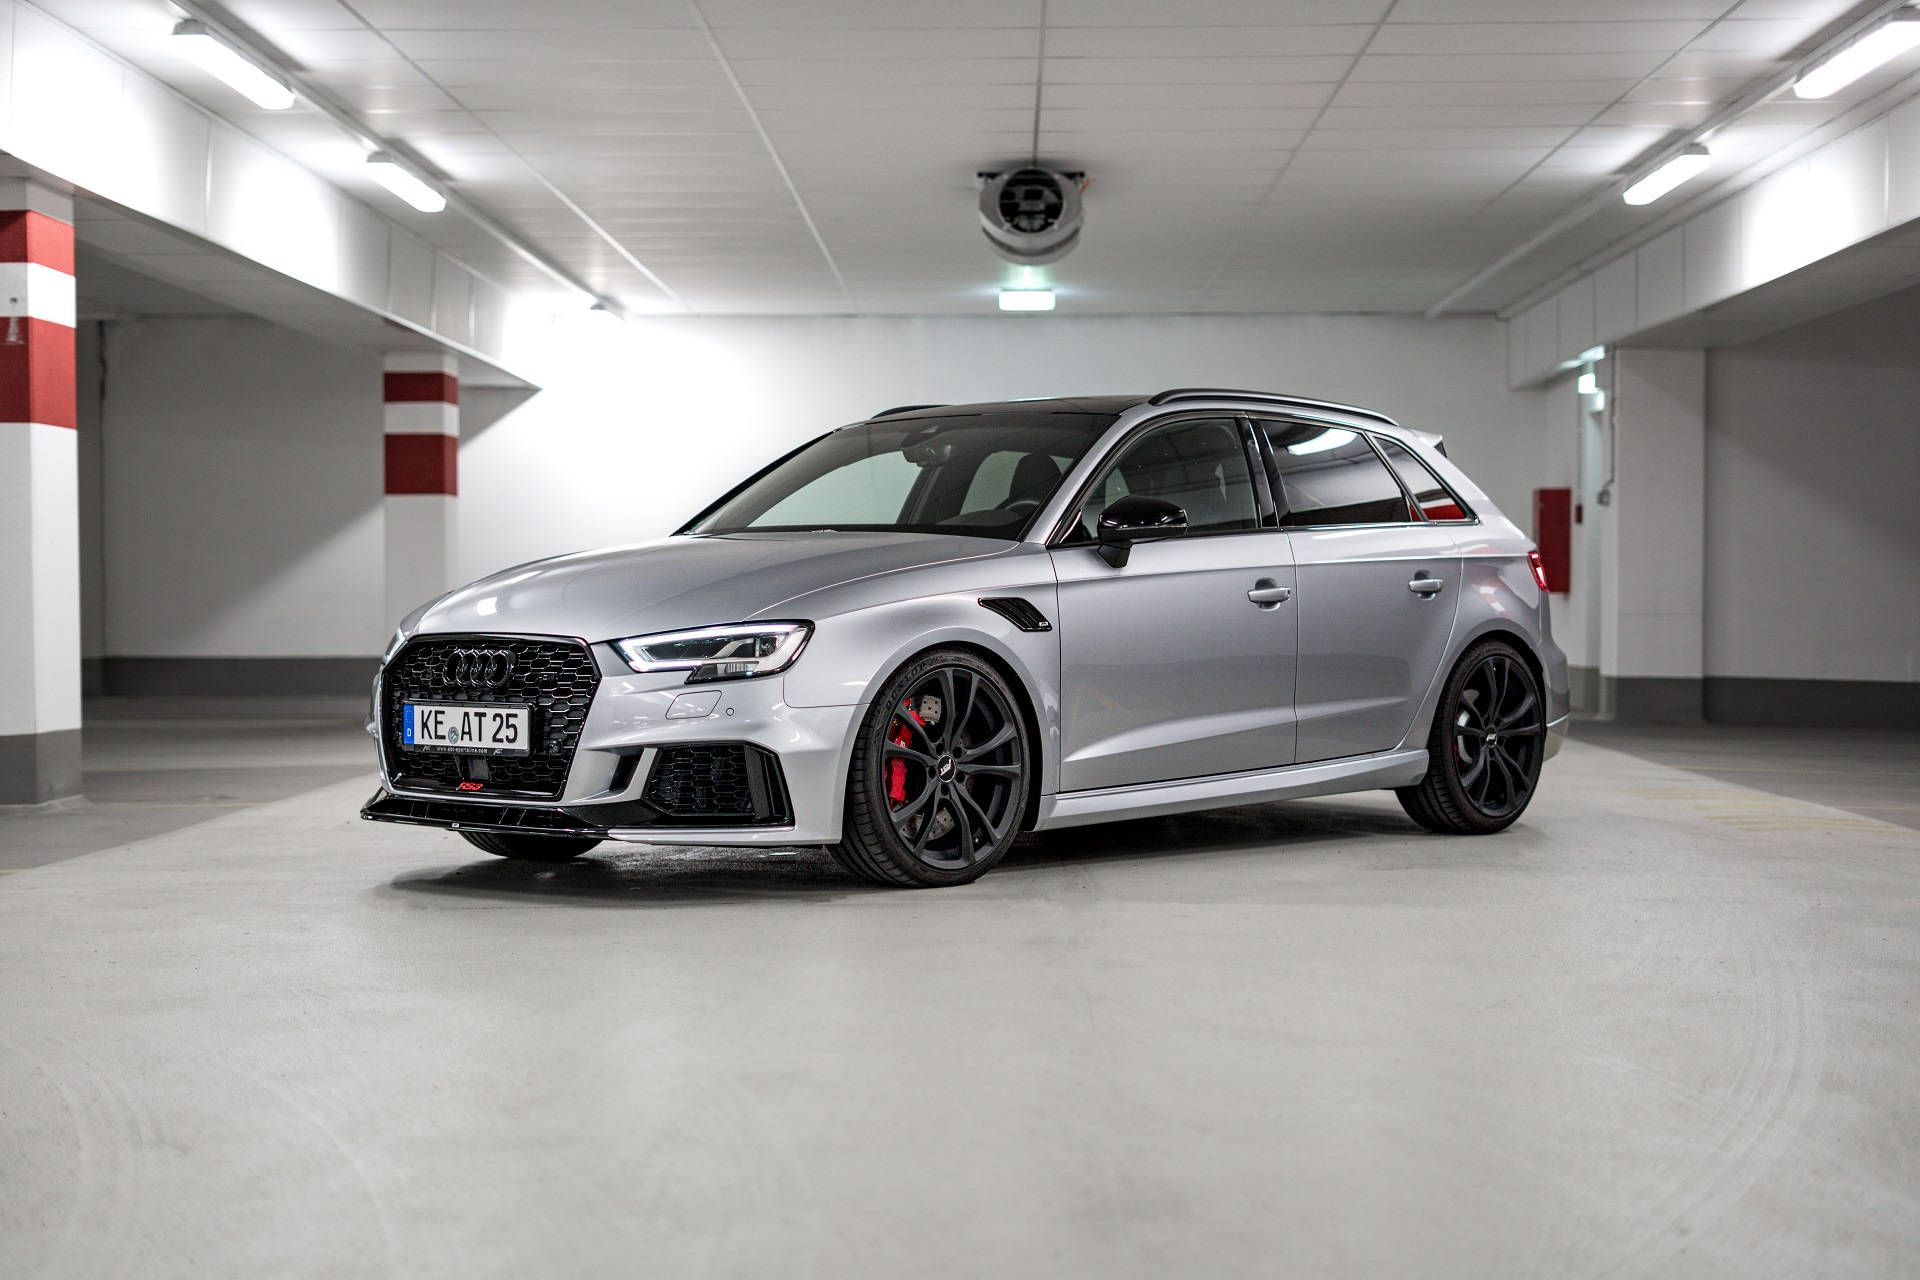 Abt Sportsline Audi Rs3 Sportback Will Help Take On Amg A45 S Audi Rs3 Audi Audi Rs